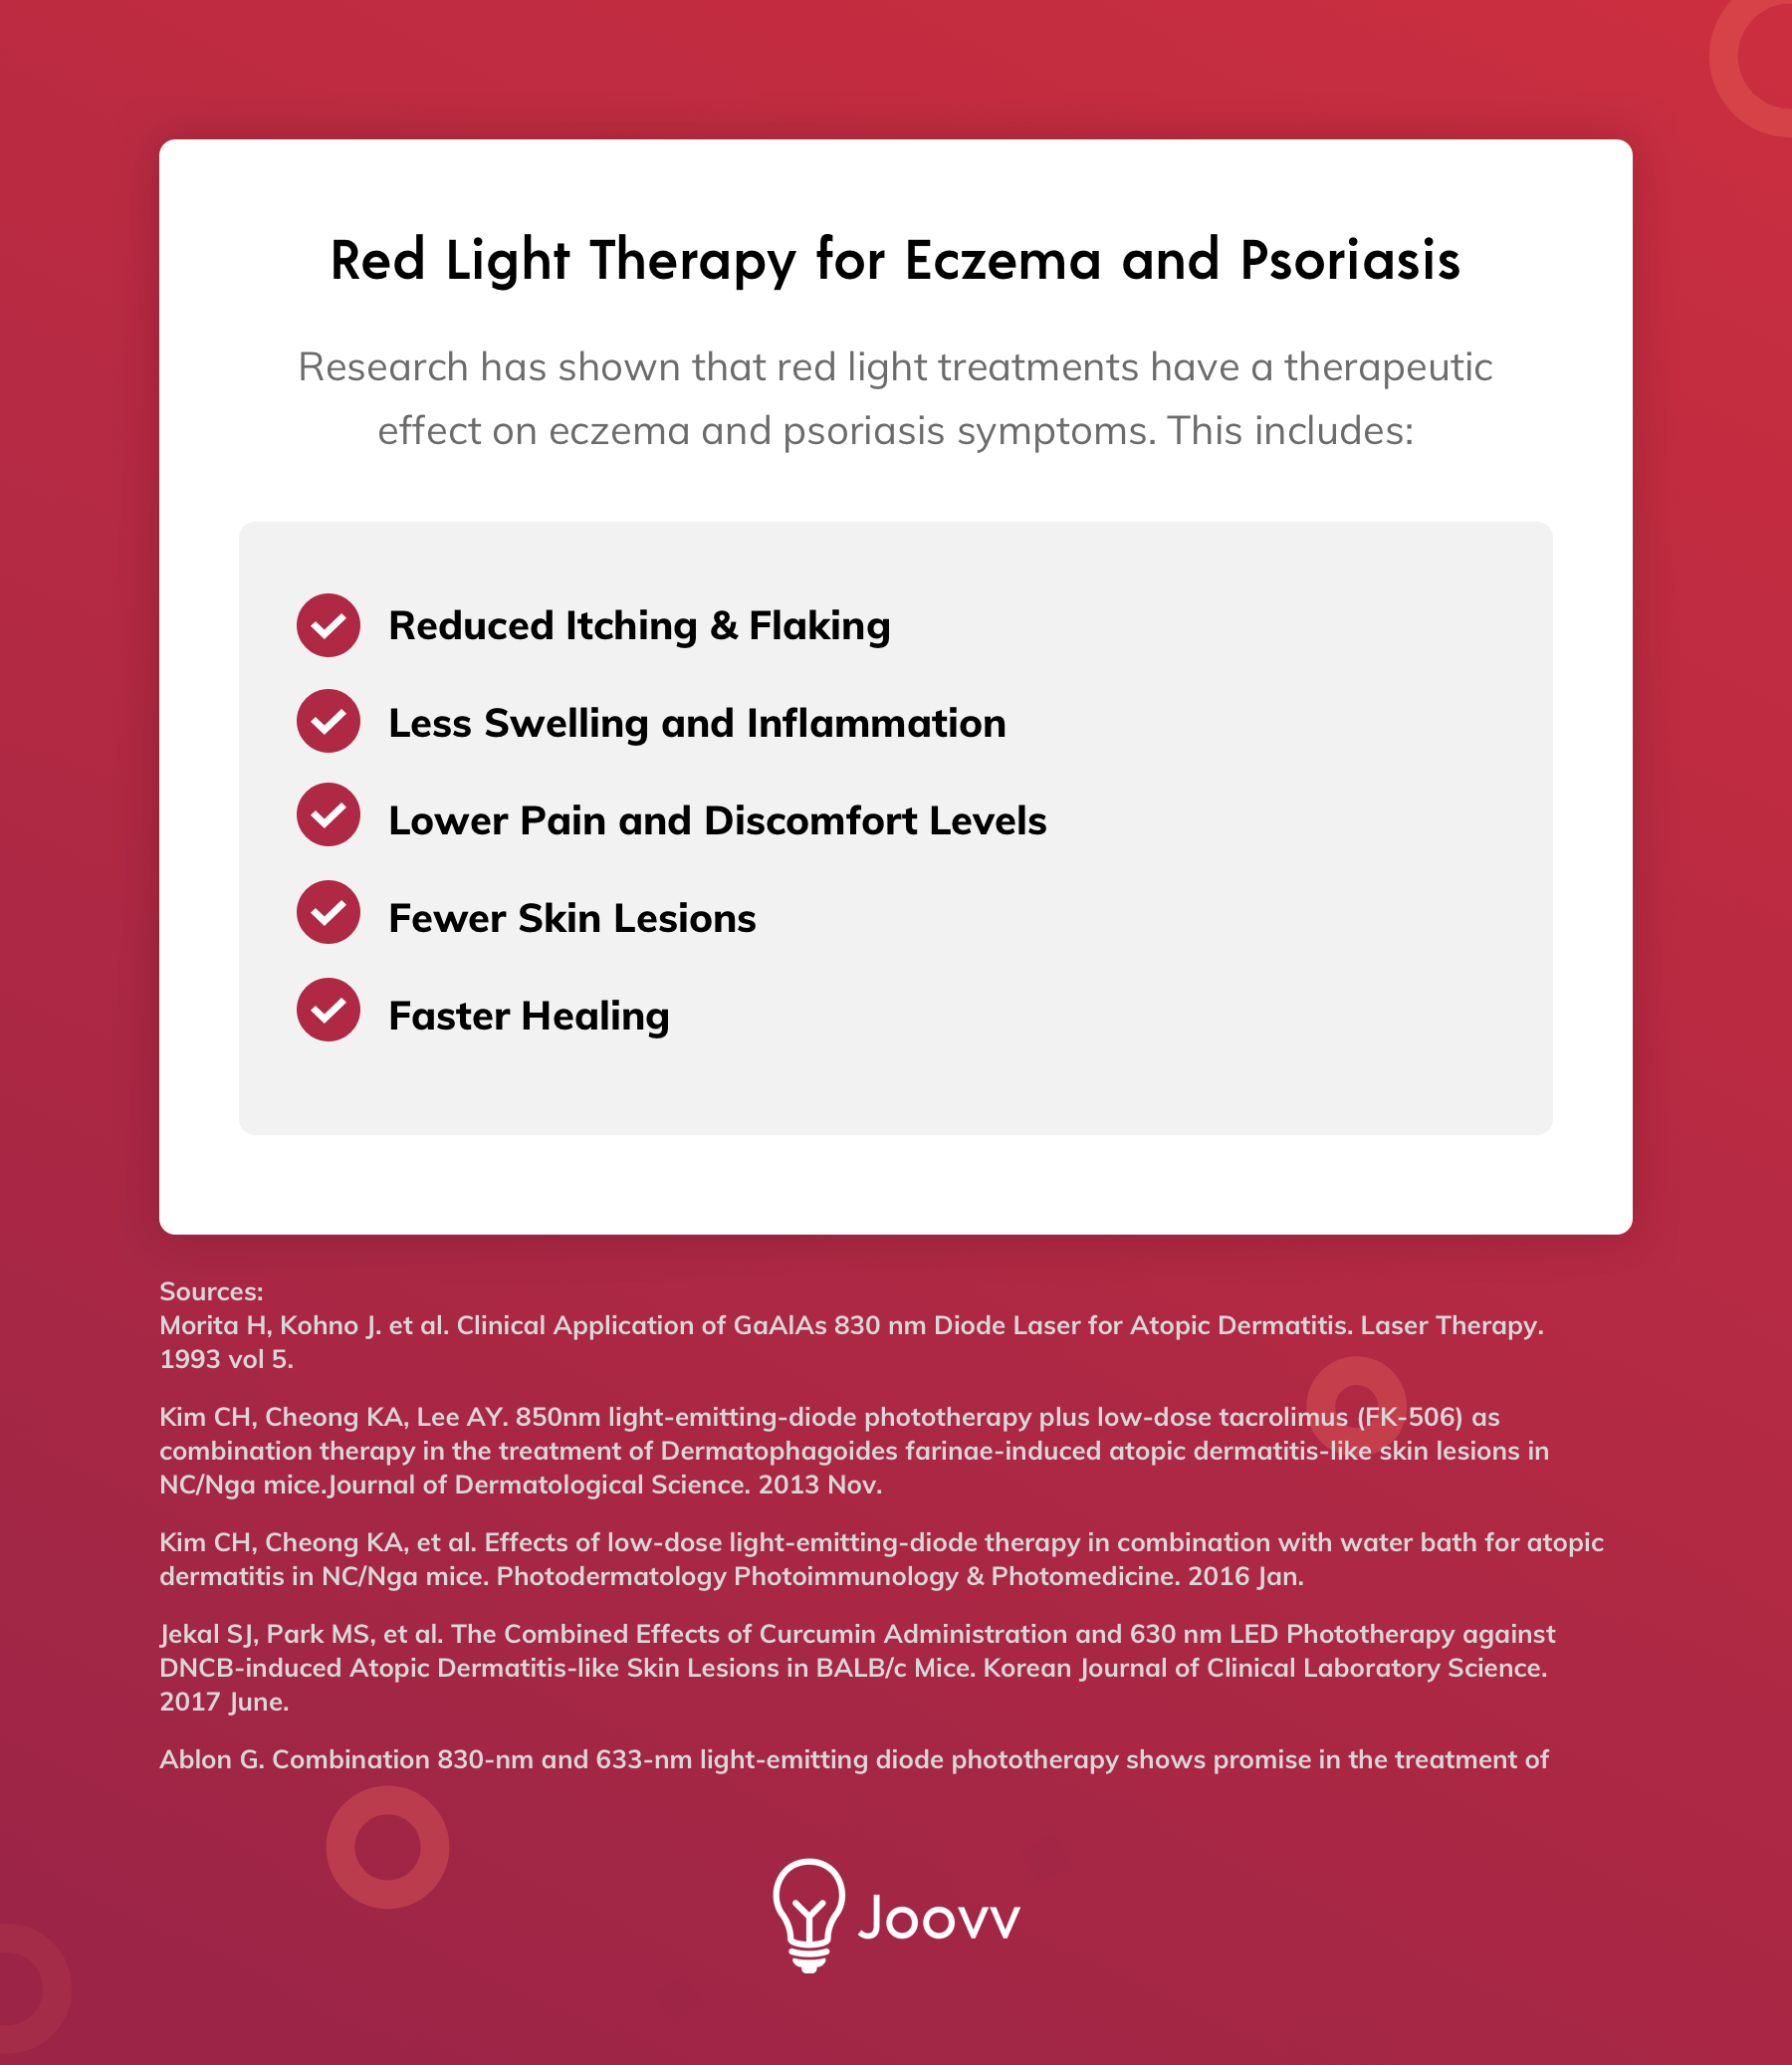 Red Light Therapy for Treating Eczema and Psoriasis Symptoms